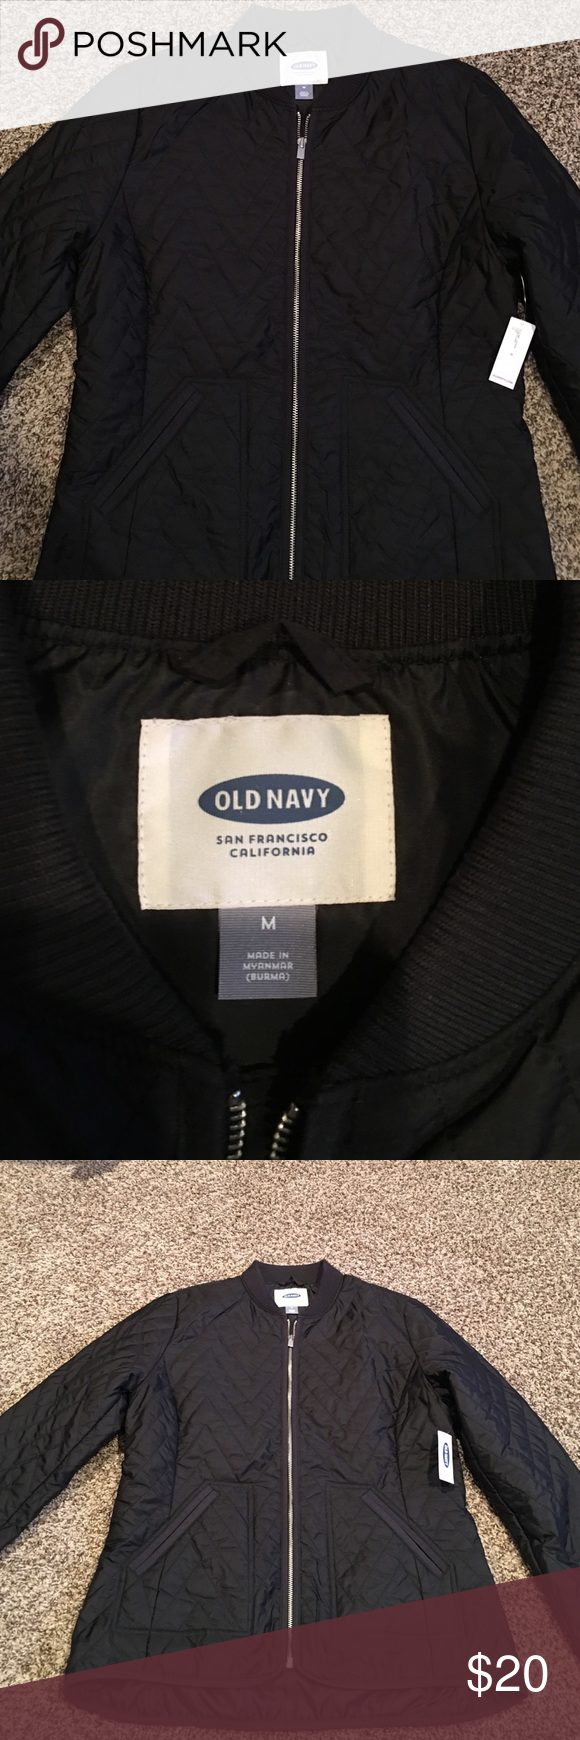 Old Navy lightweight jacket New! Old Navy lightweight black jacket. Ordered online, never worn with tags. Solid black, with silver zipper. Old Navy Jackets & Coats Puffers